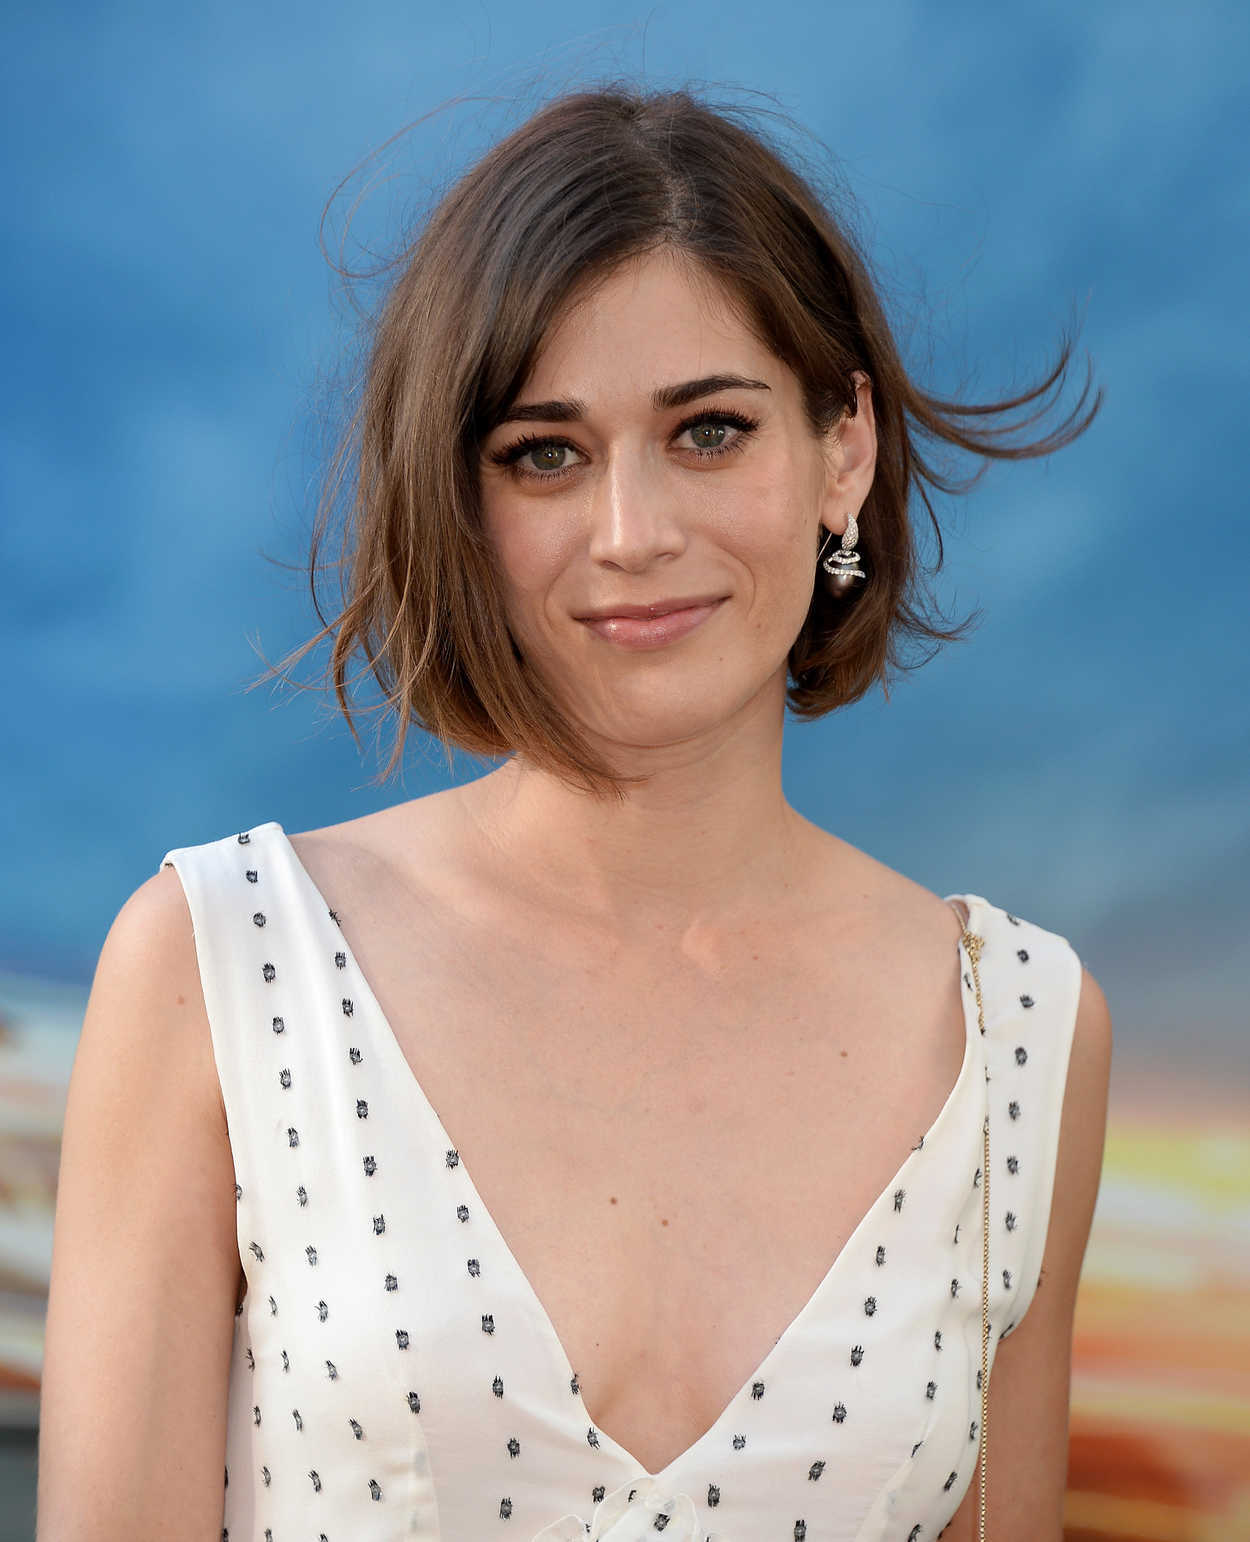 Lizzy caplan save the date 3